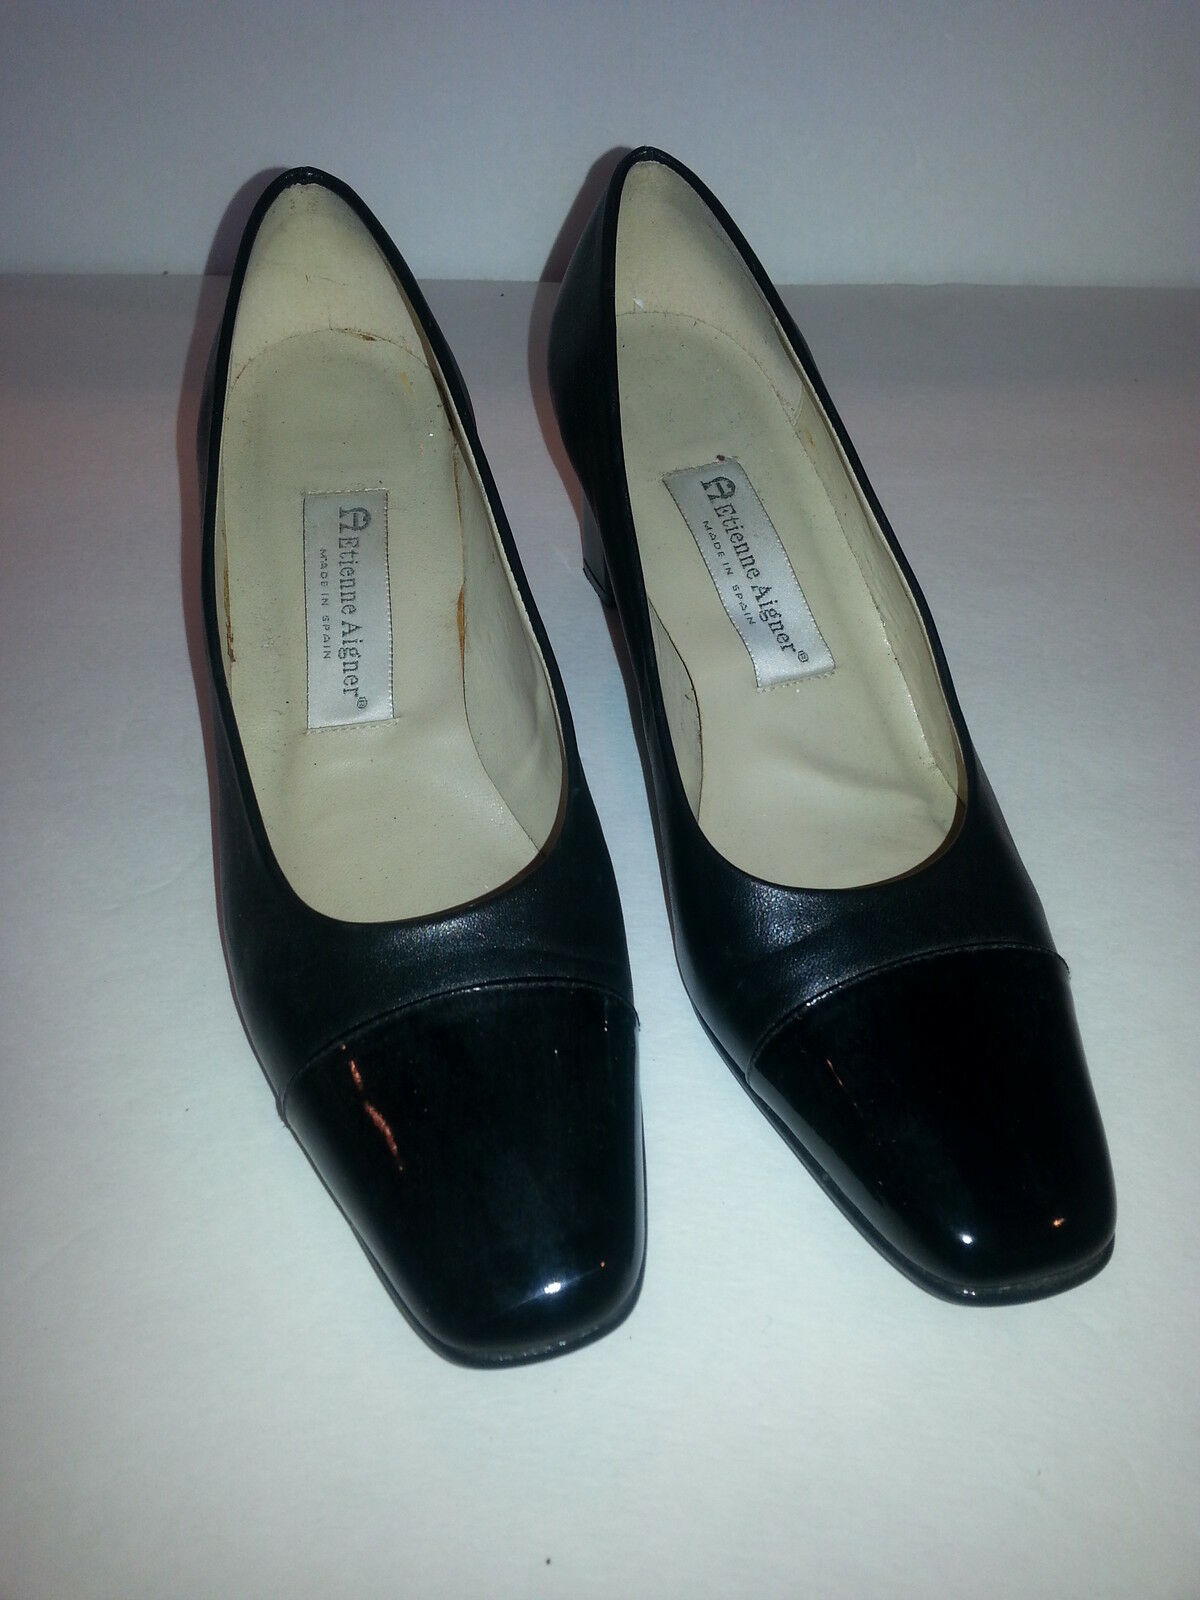 ETIENNE LEATHER AIGNER  LADIES BLACK LEATHER ETIENNE WITH PATENT TOE HEELS SHOES SIZE 8.5 M 7bfdf6